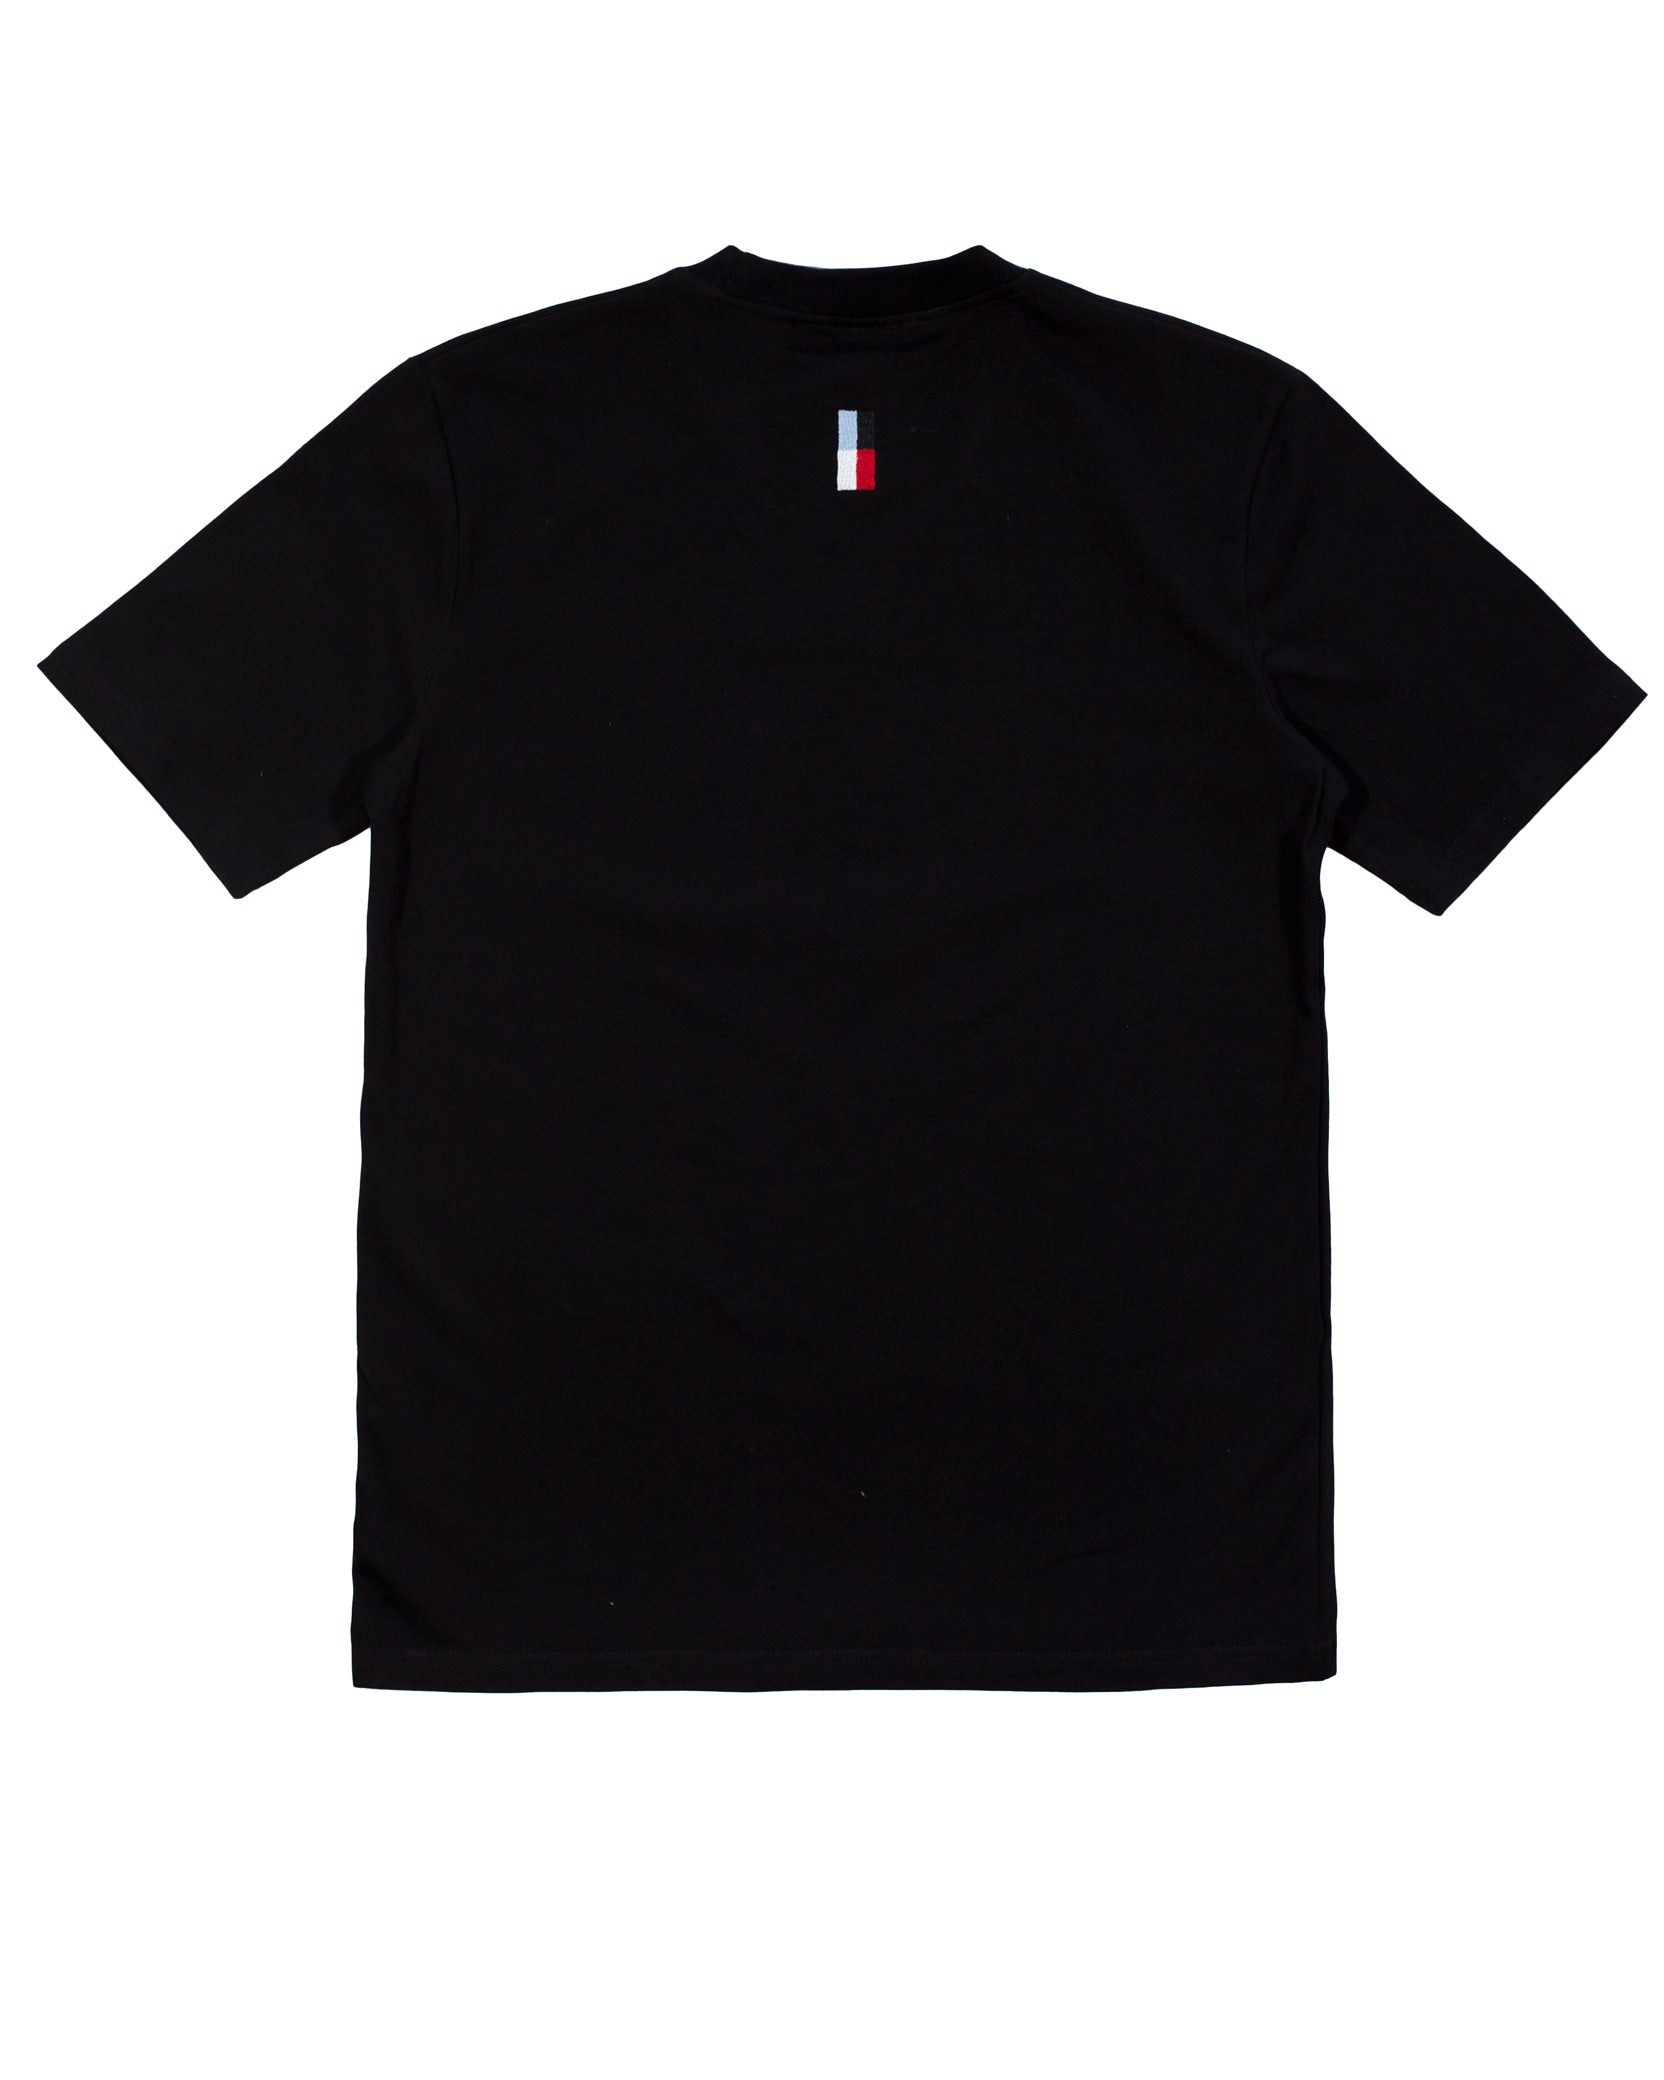 EMBROIDERY LOGO TEE - BLACK